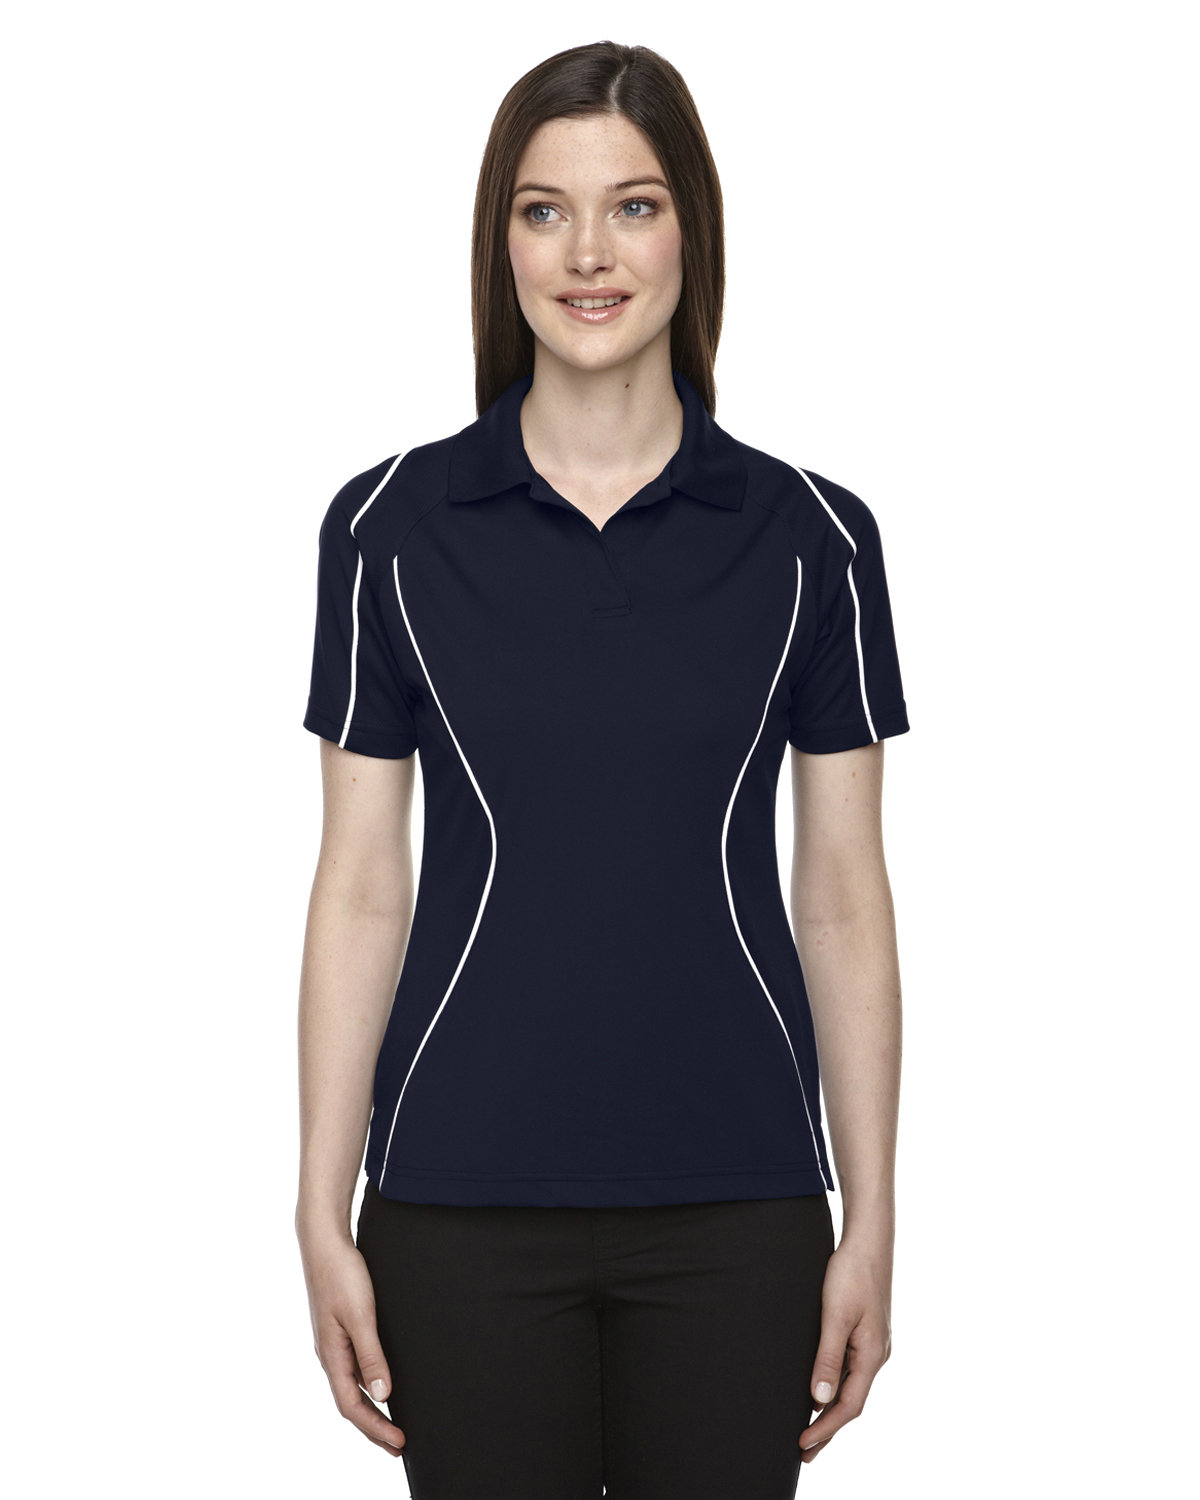 Extreme Ladies' Eperformance™ Velocity Snag Protection Colorblock Polo with Piping CLASSIC NAVY